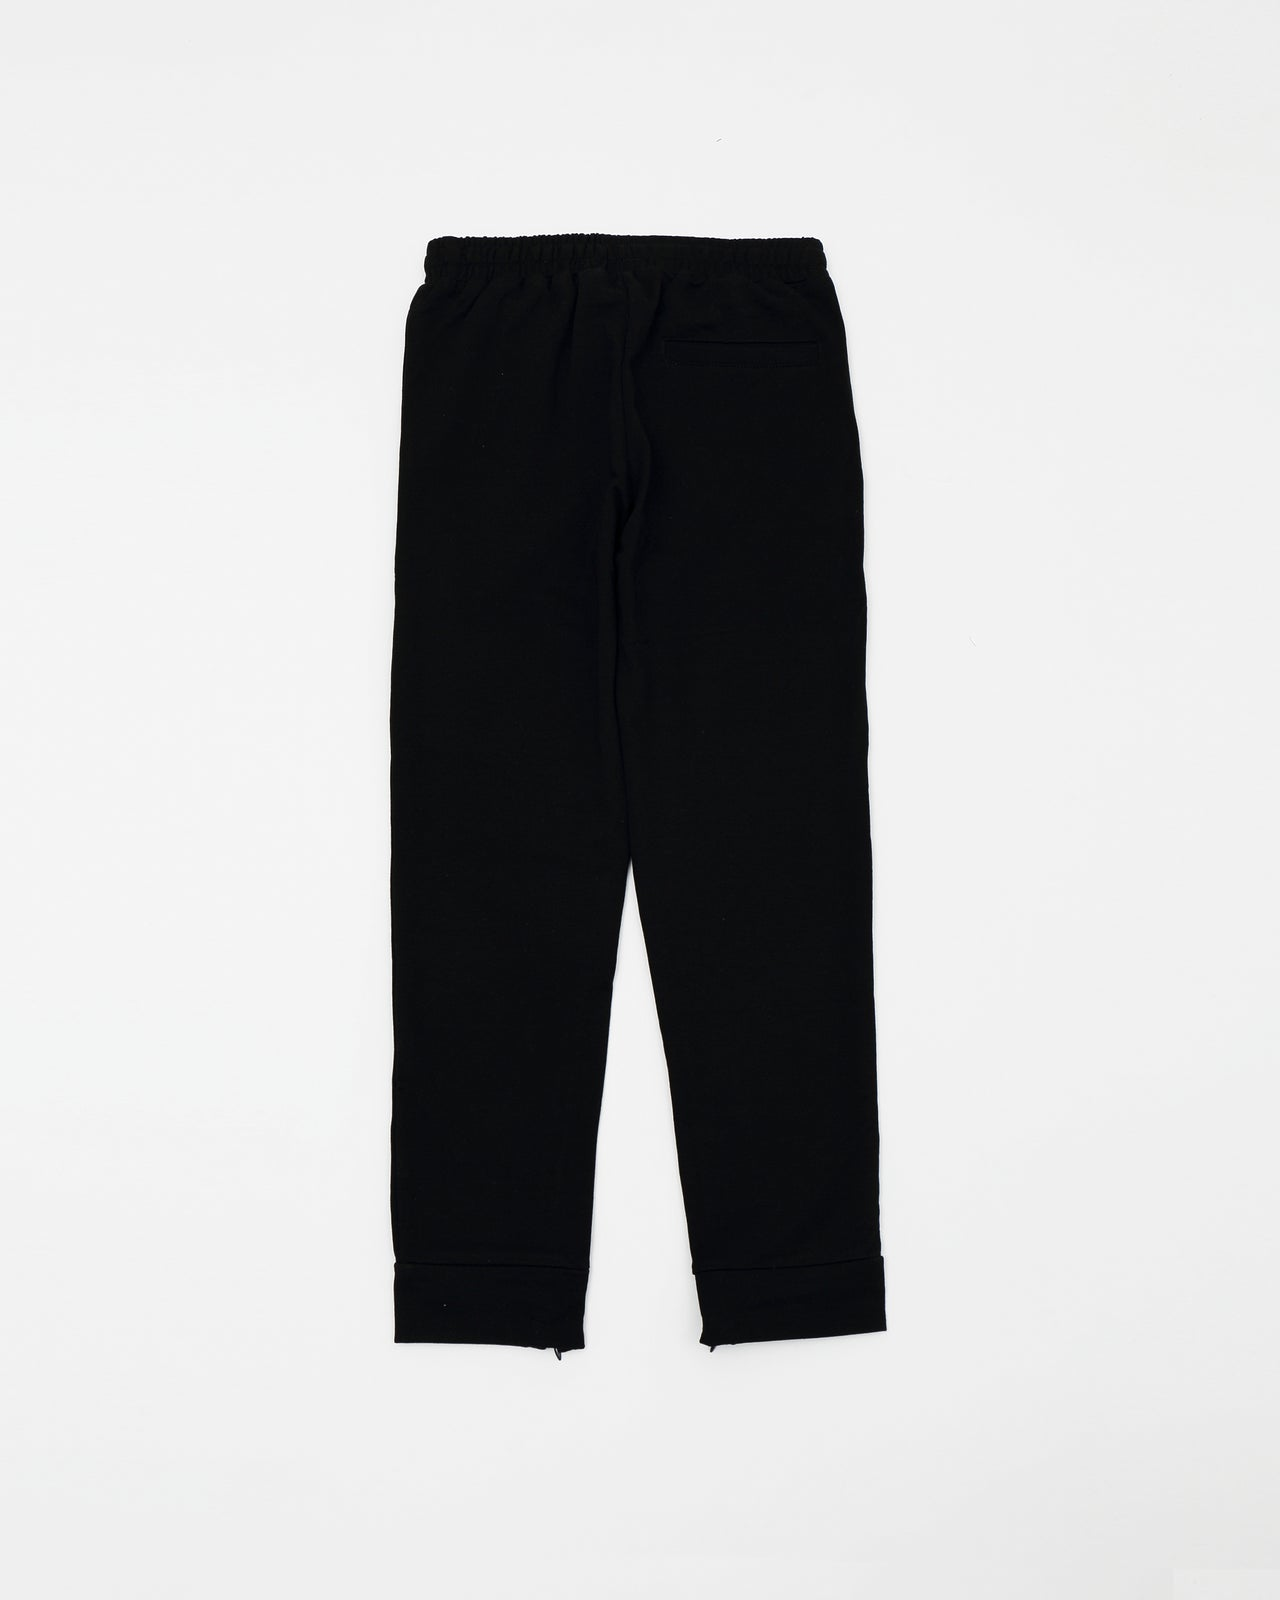 Black Pyramid Kids Pants - Color: Black